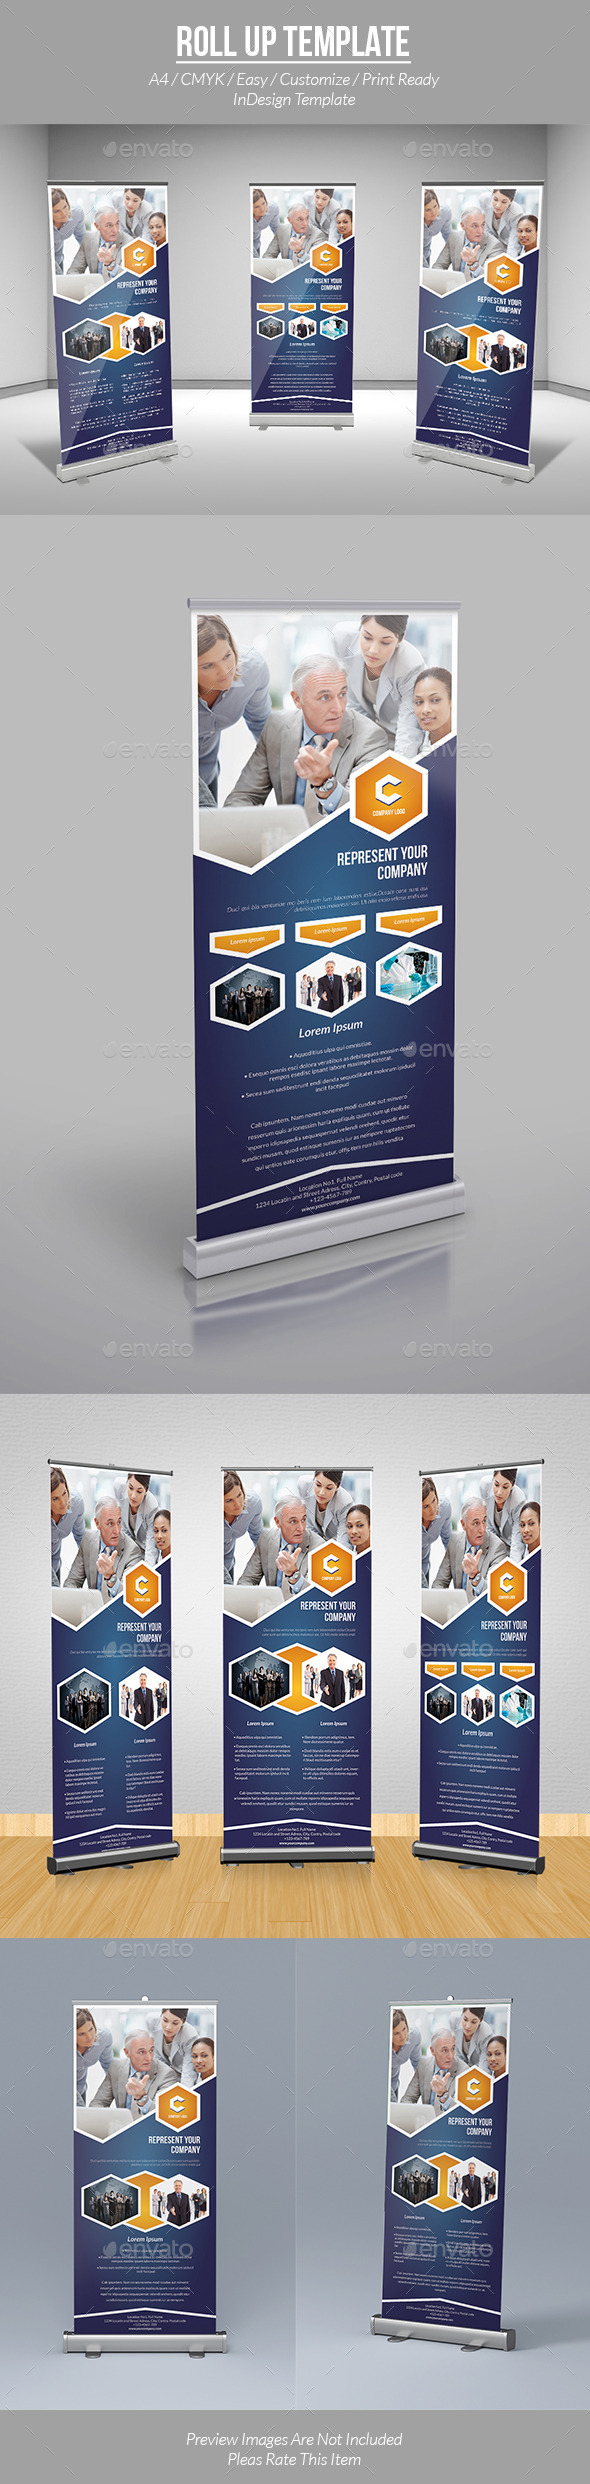 Roll Up Template - Informational Brochures